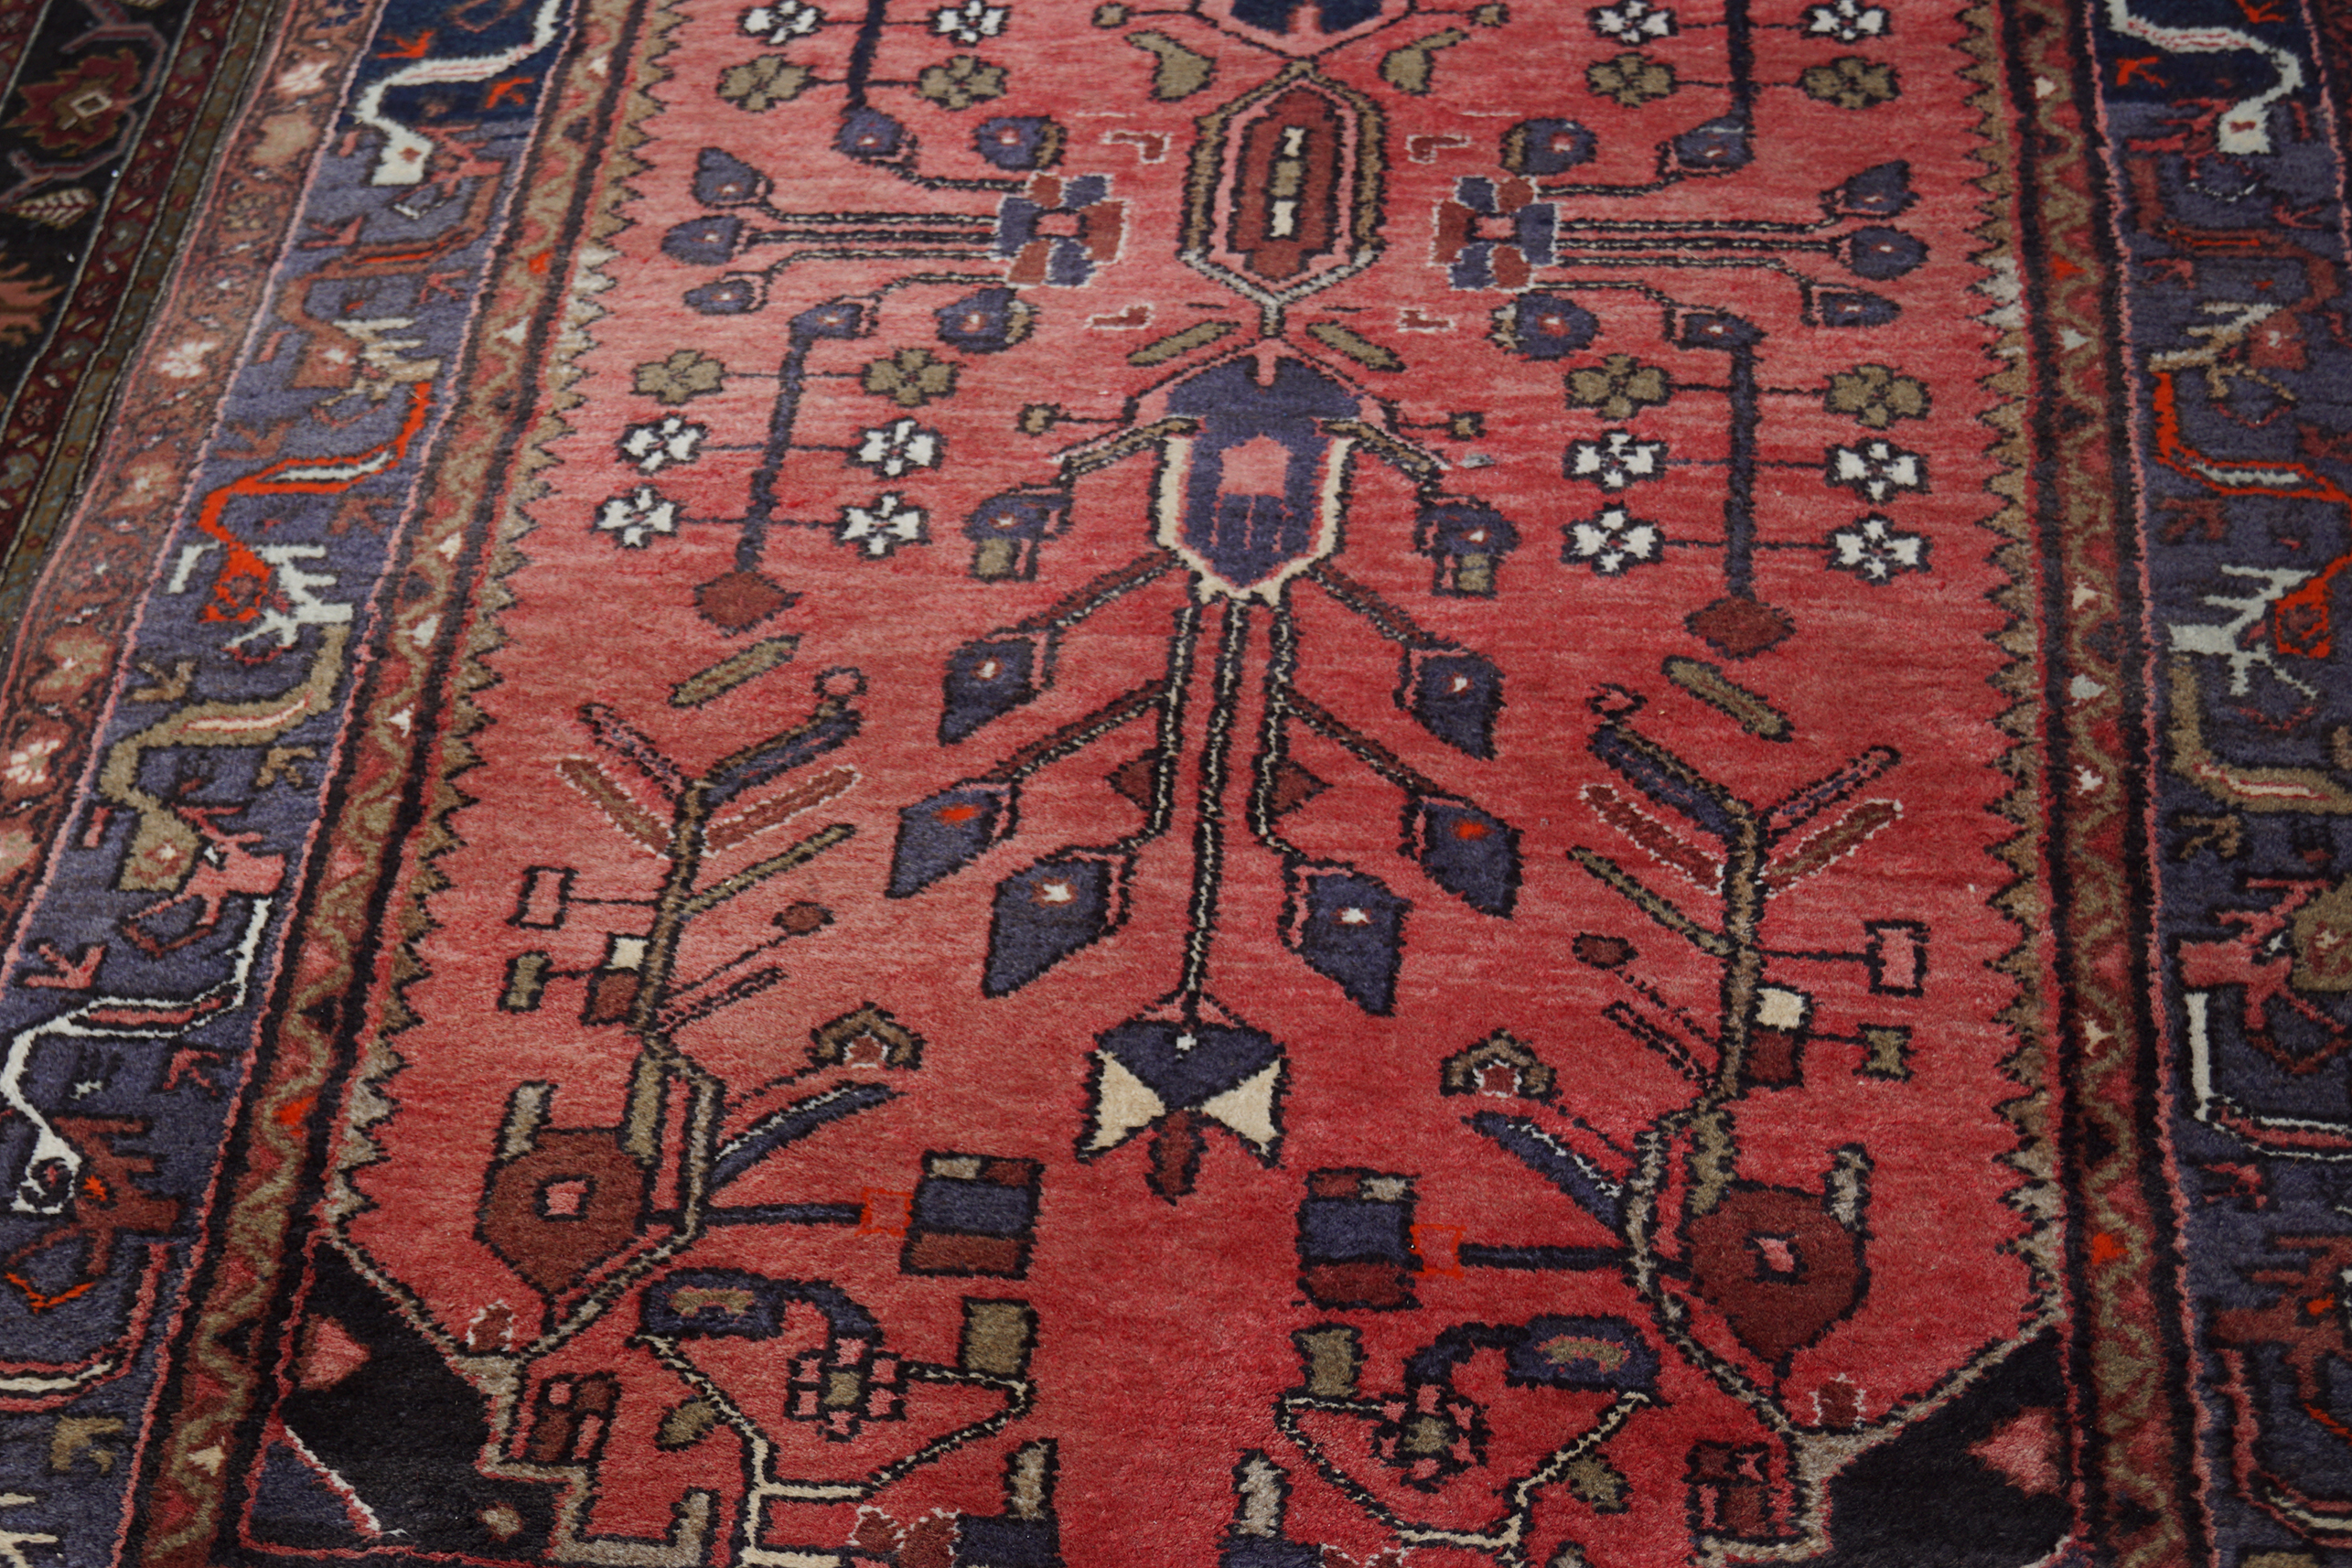 LARGE PERSIAN RUG - Image 2 of 5